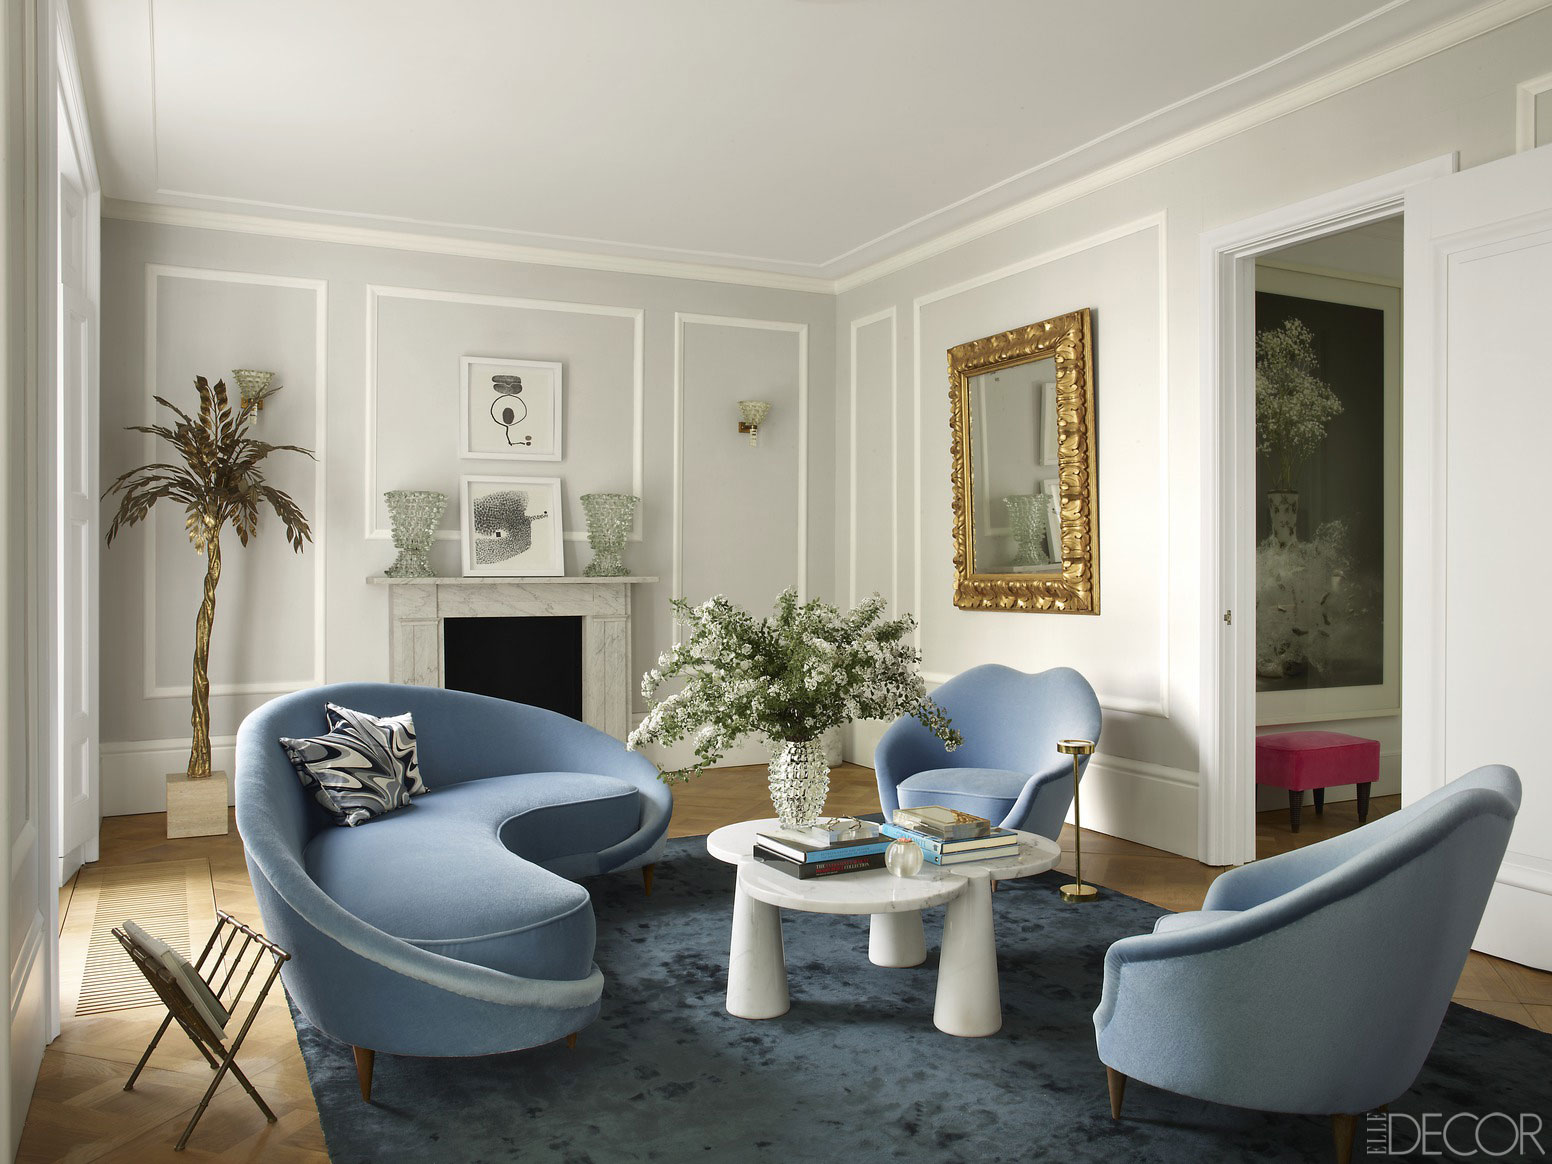 How to decorate around your favorite rug for Decorating townhouse living room ideas